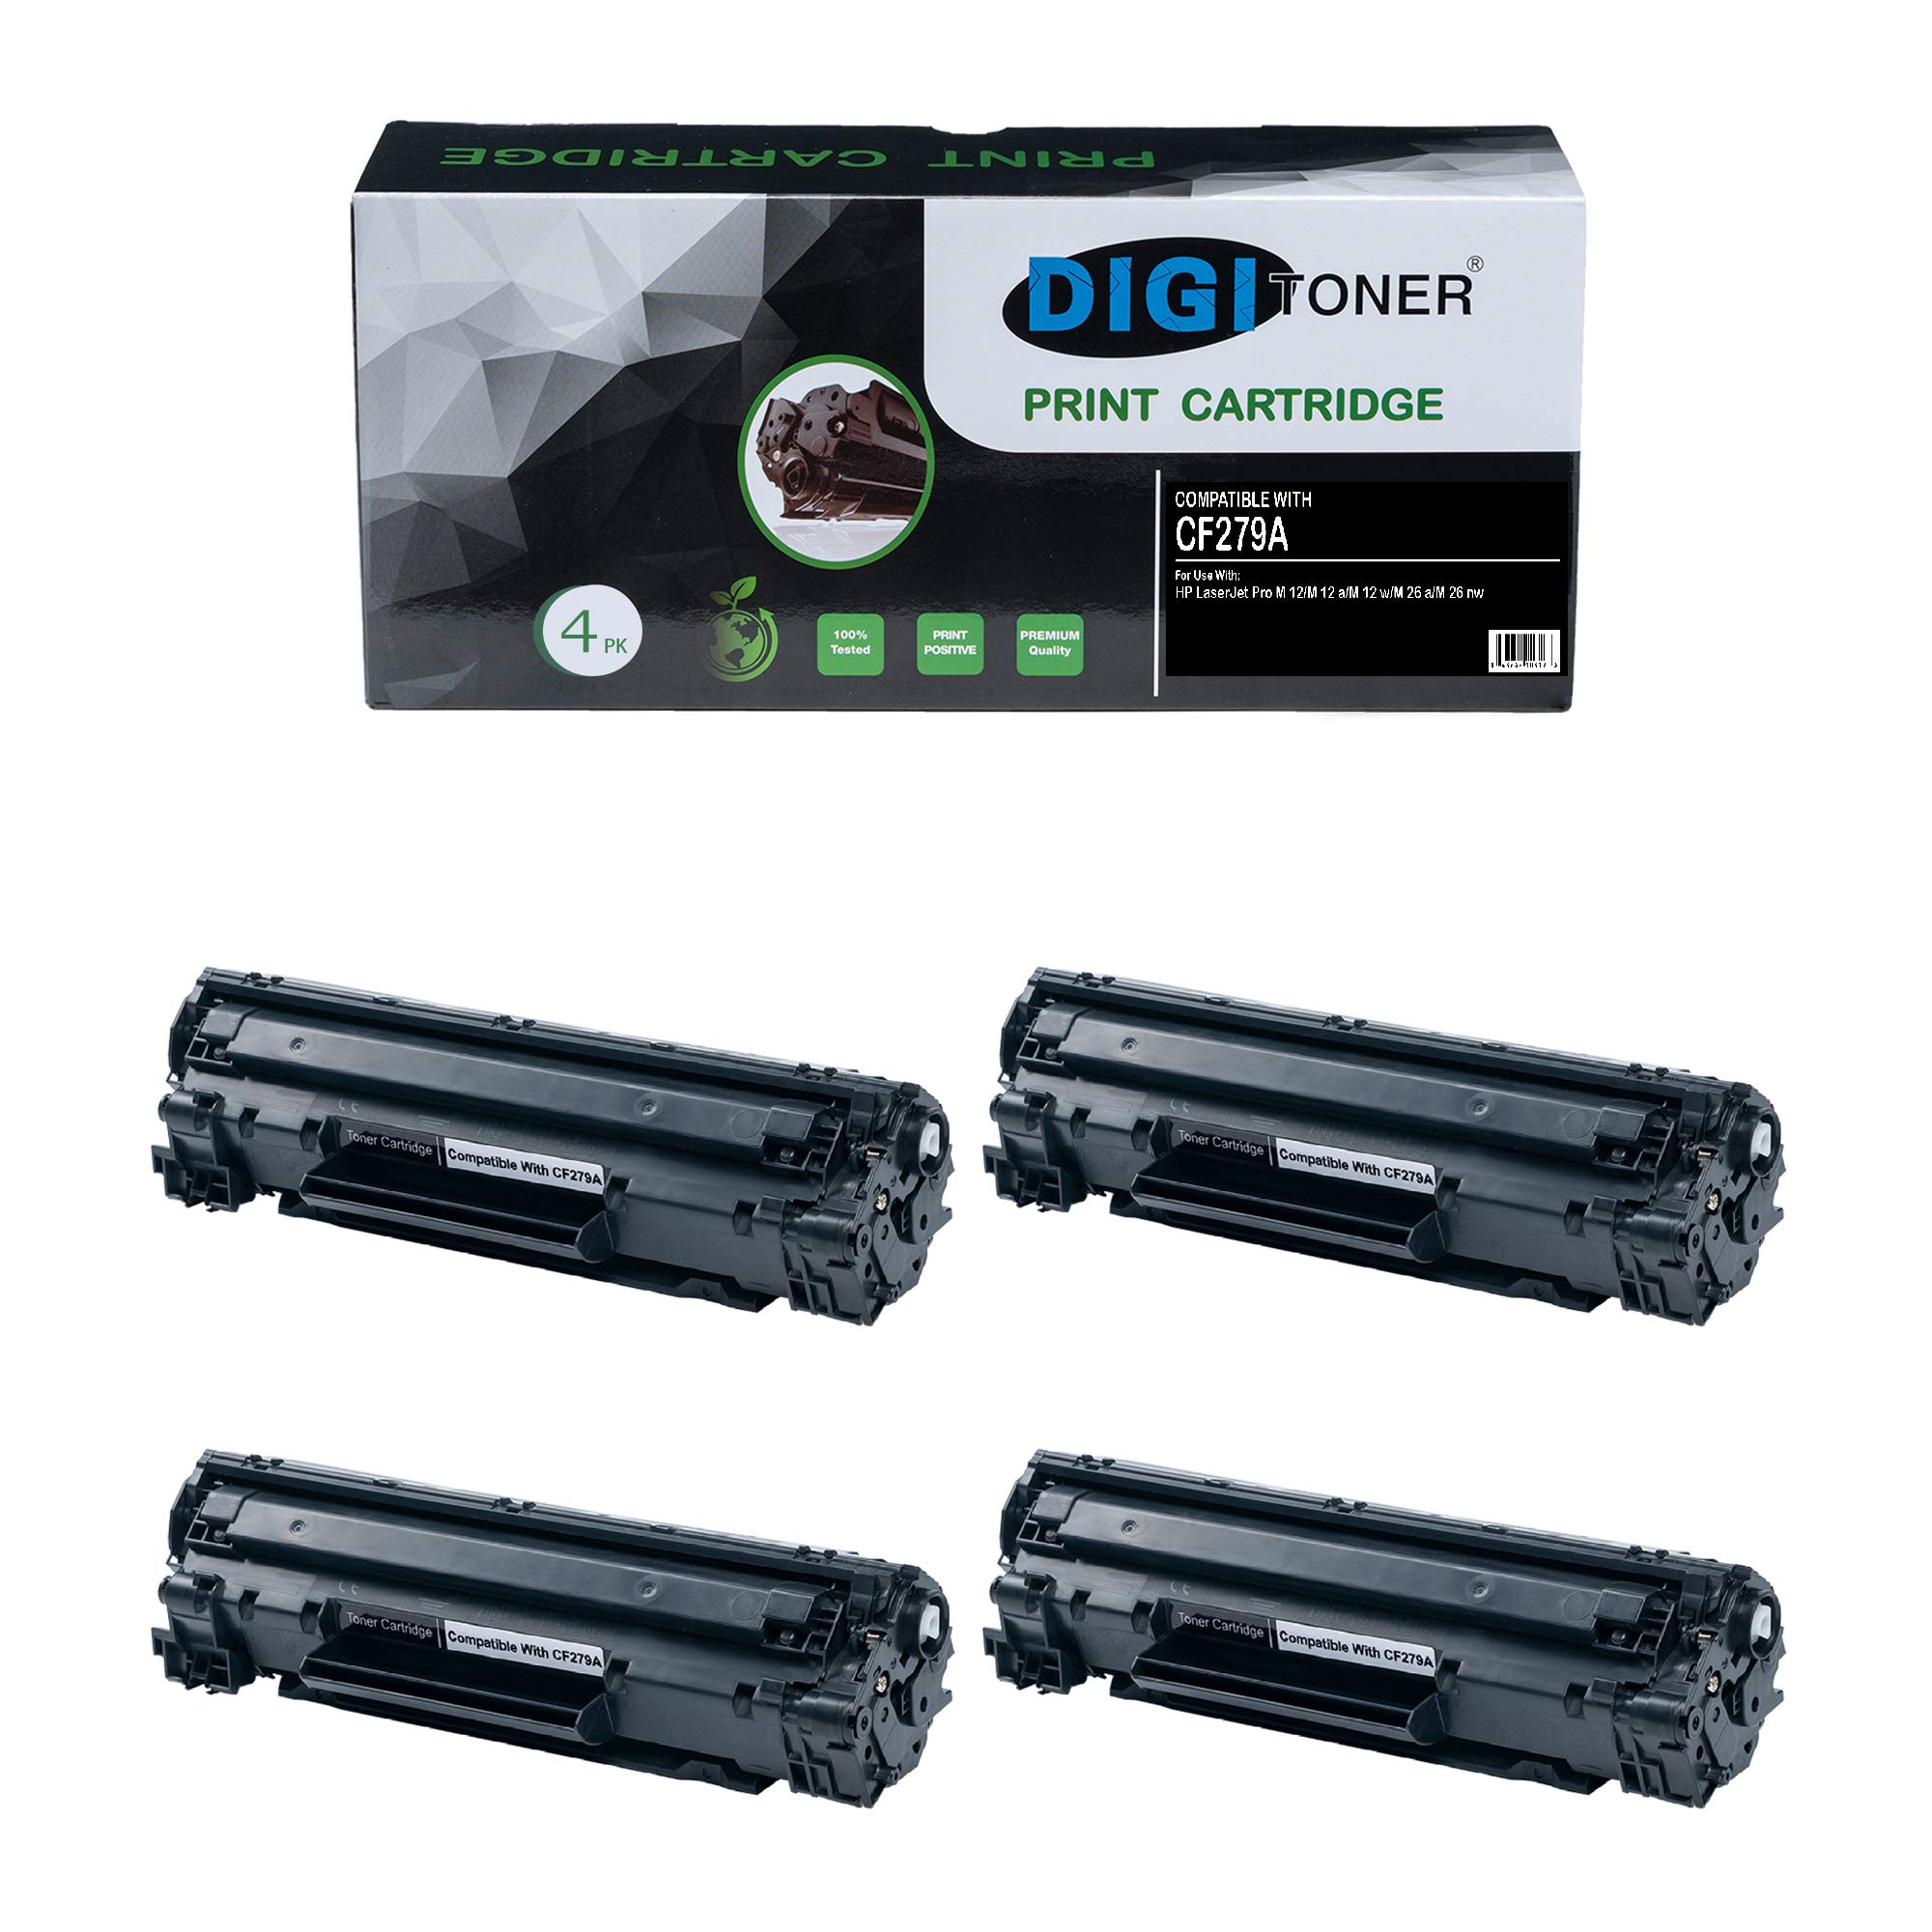 DIGITONER Compatible HP 79 HP 79A HP CF279A Toner Cartridge HP– CF279A High Yield Toner Cartridge Replacement for HP Laser Printer Laserjet Pro M12w M12a MFP M26a M26nw – Black [4 Pack]